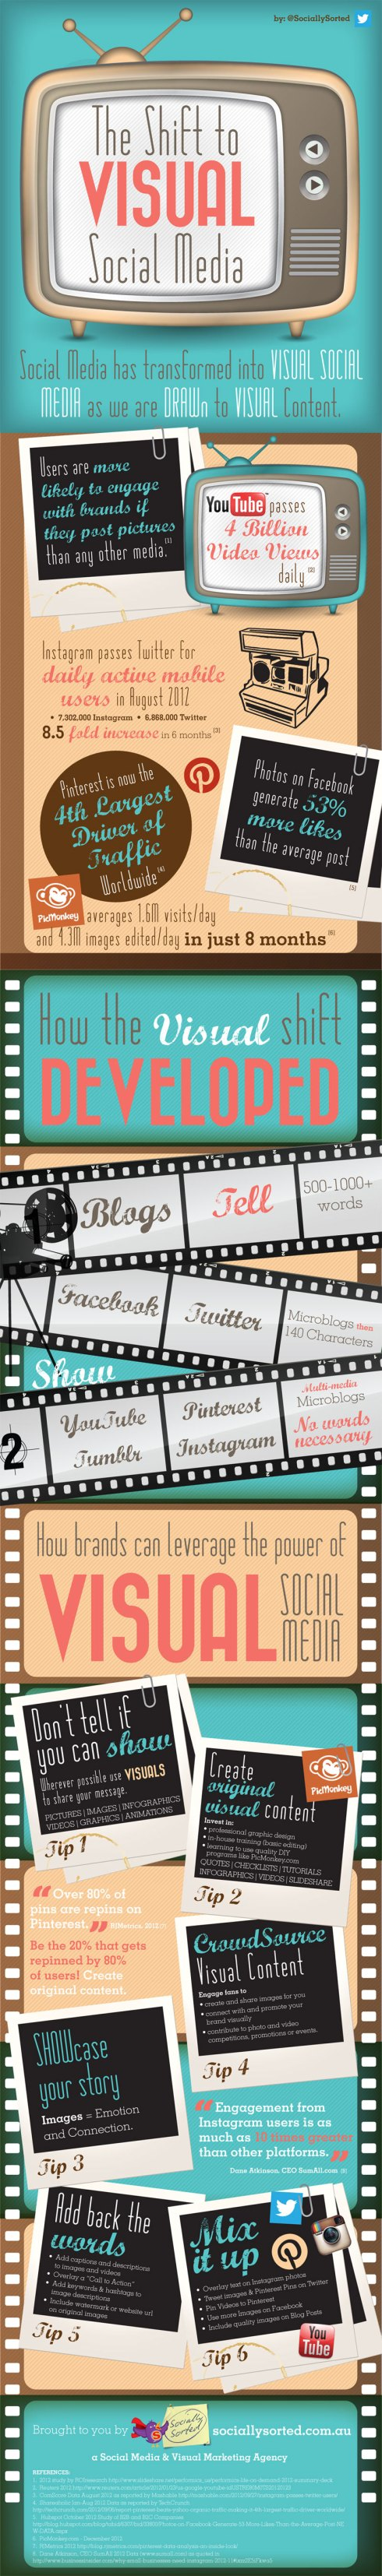 The-shift-to-visual-social-media-infographic